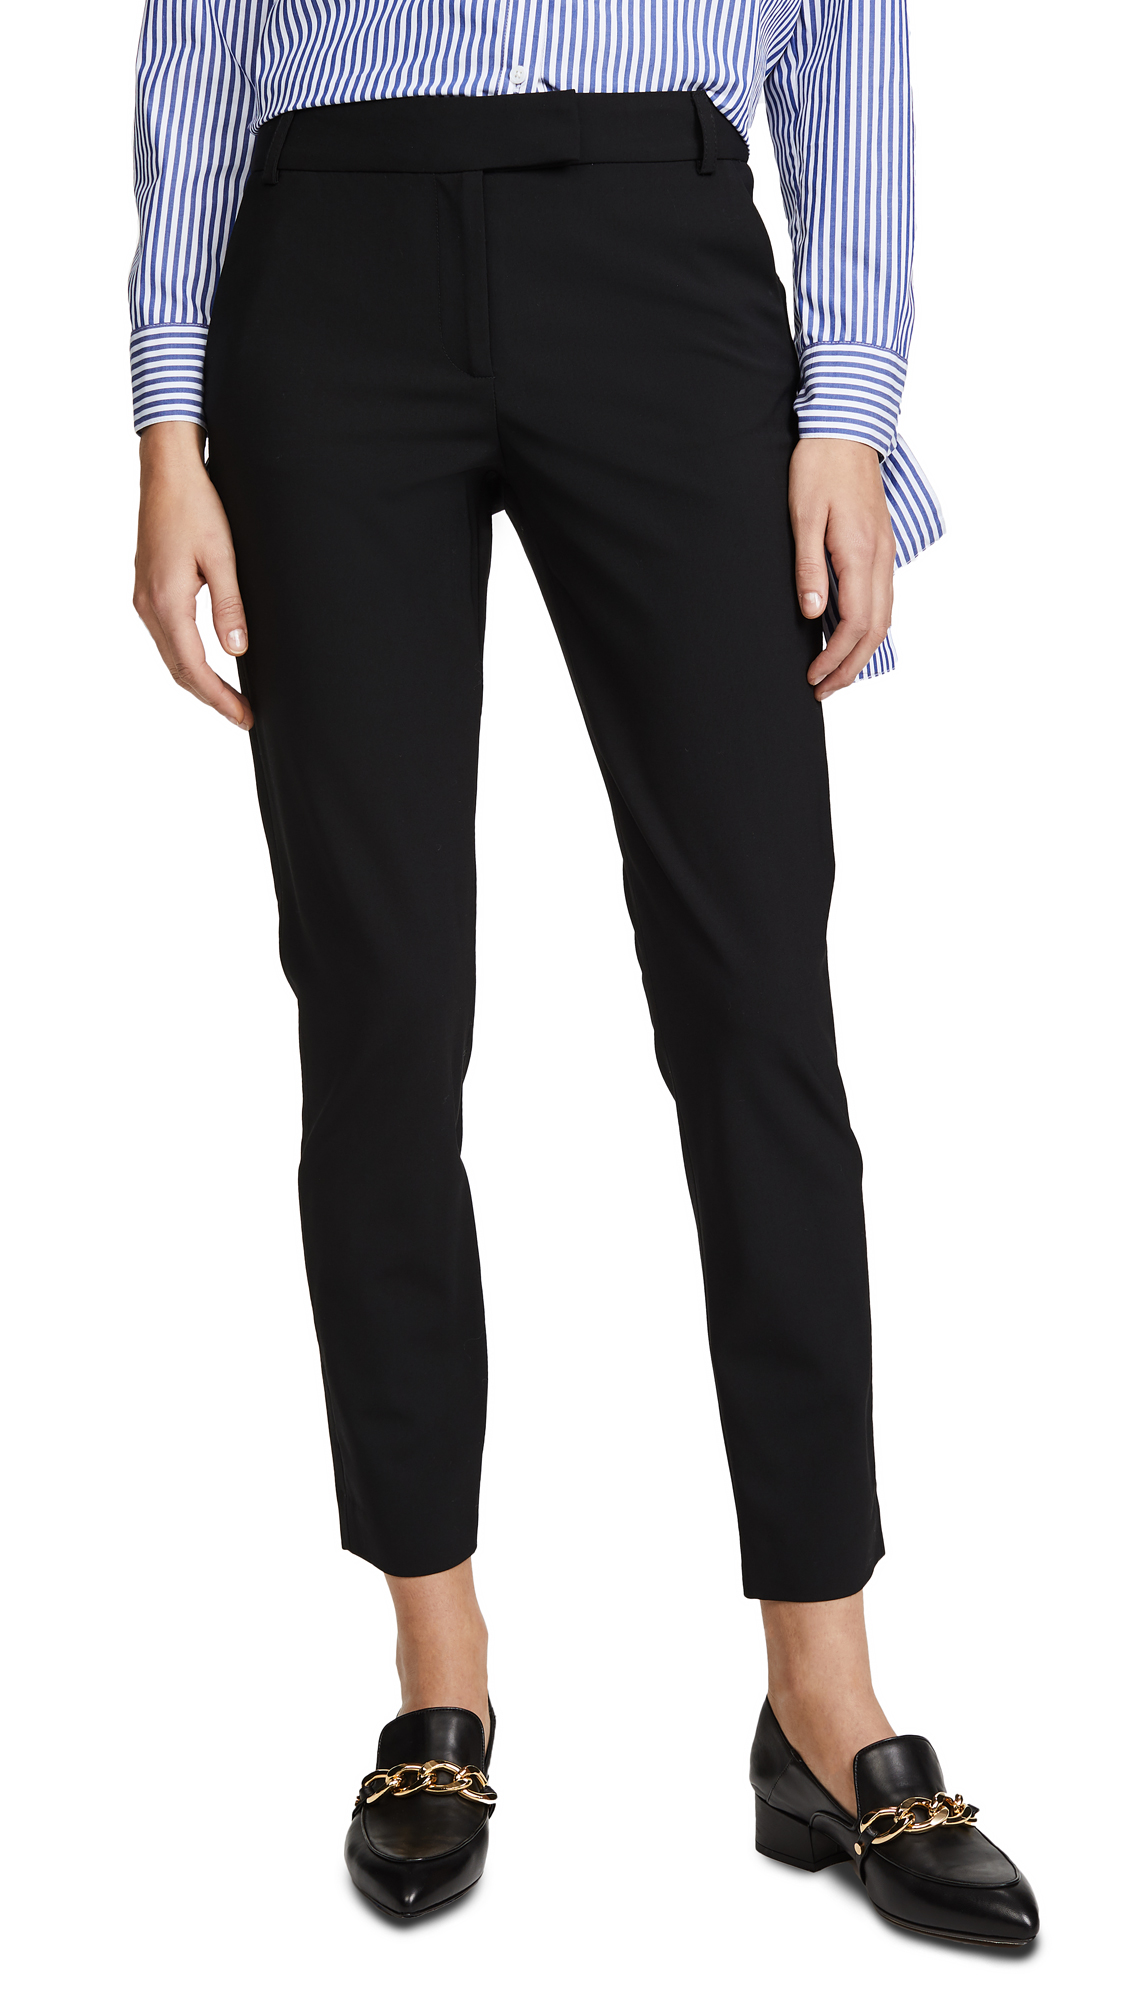 Veronica Beard Slim Cigarette Pants - Black